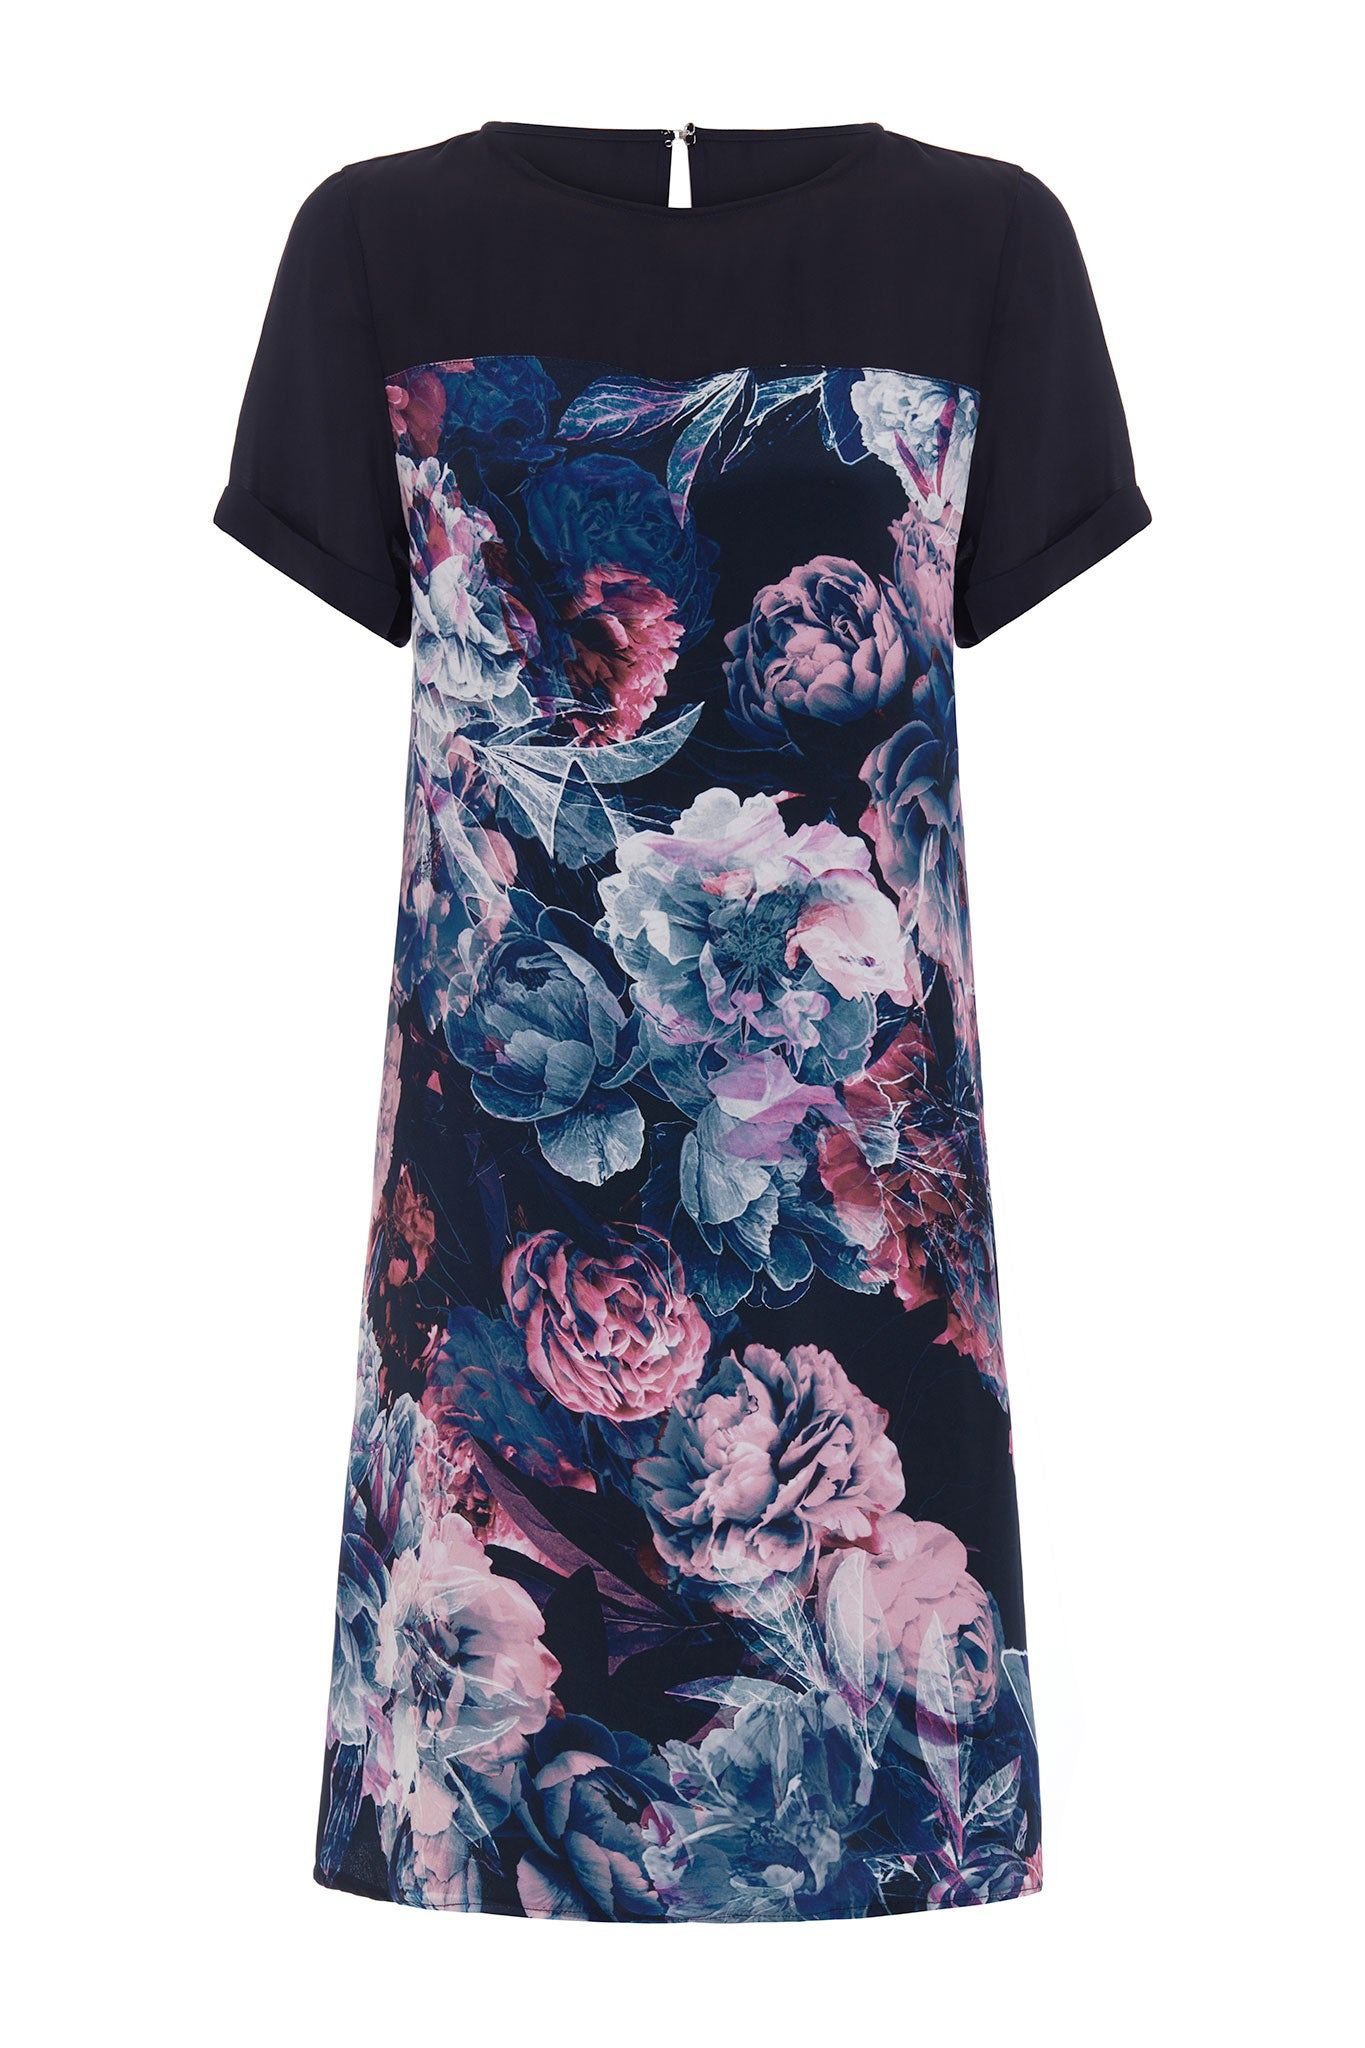 The Heather Silk Floral Shift Dress